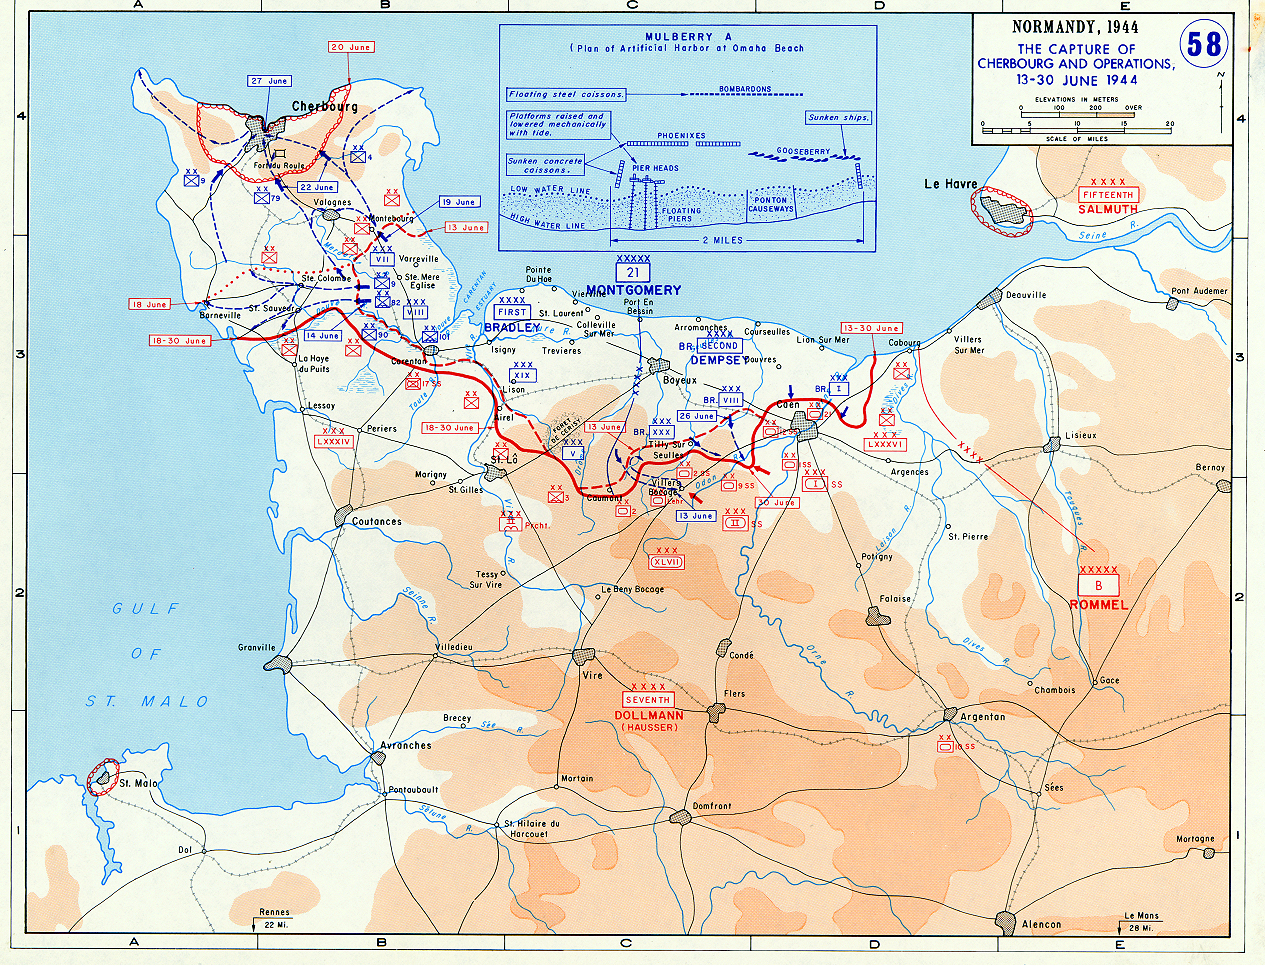 an overview of the popular battle operation operation overload Codenamed operation overlord, the battle began on june 6, 1944, also known as d-day, when some 156,000 american, british and canadian forces landed on five beaches along a 50-mile stretch of the .